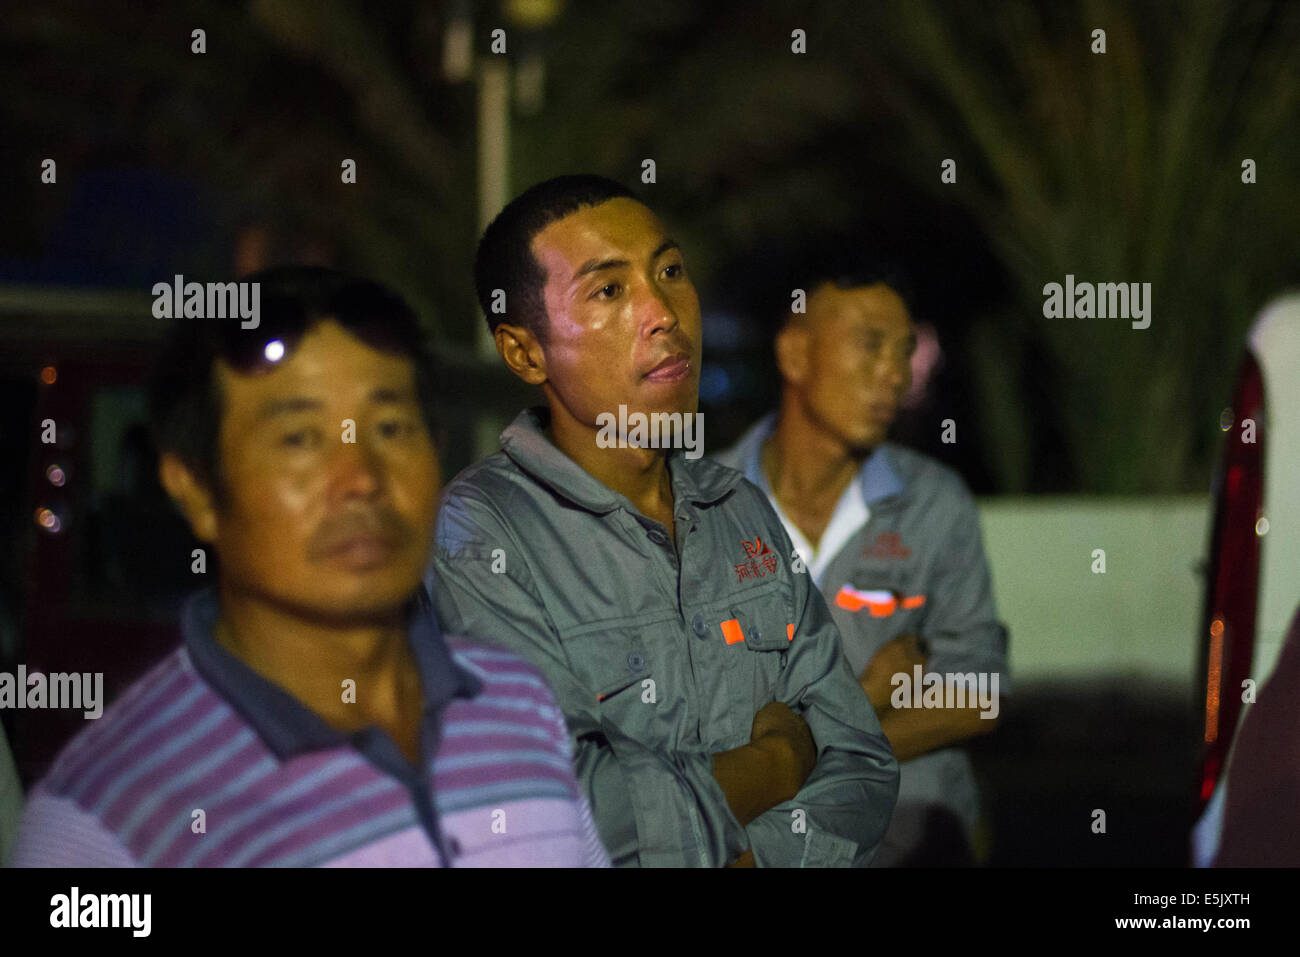 Chinese evacuees wait to get their visas at the Ras Jadir border control between Tunisia and Libya, late on Aug. - Stock Image